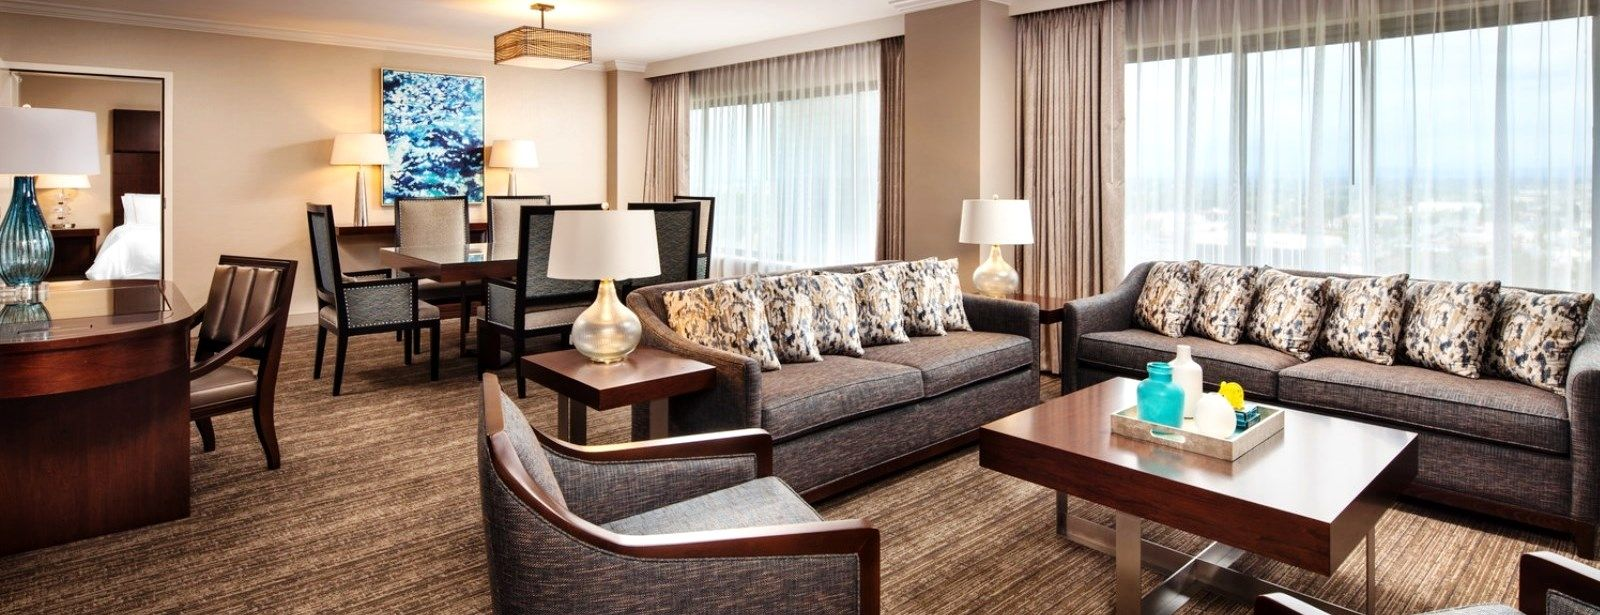 Luxury Suites | The Westin South Coast Plaza, Costa Mesa